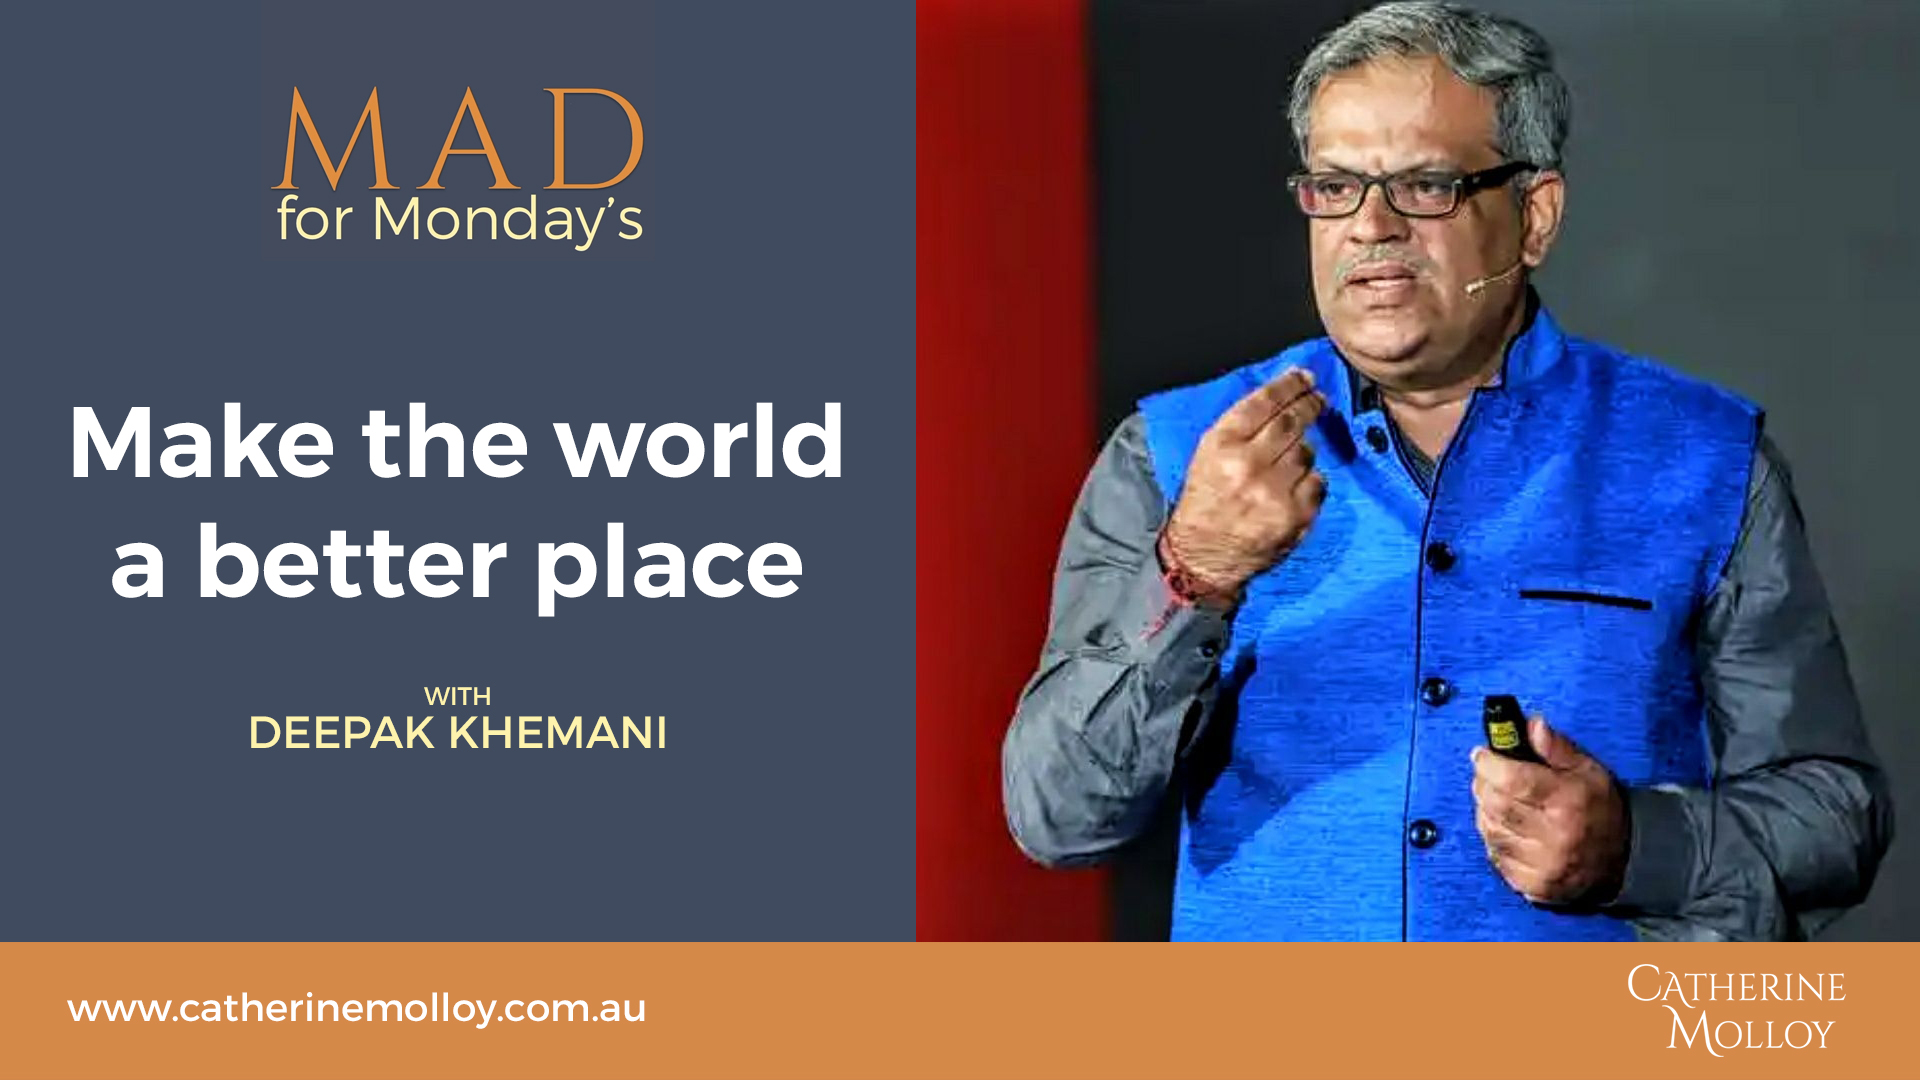 MAD for Monday's – Make the world a better place